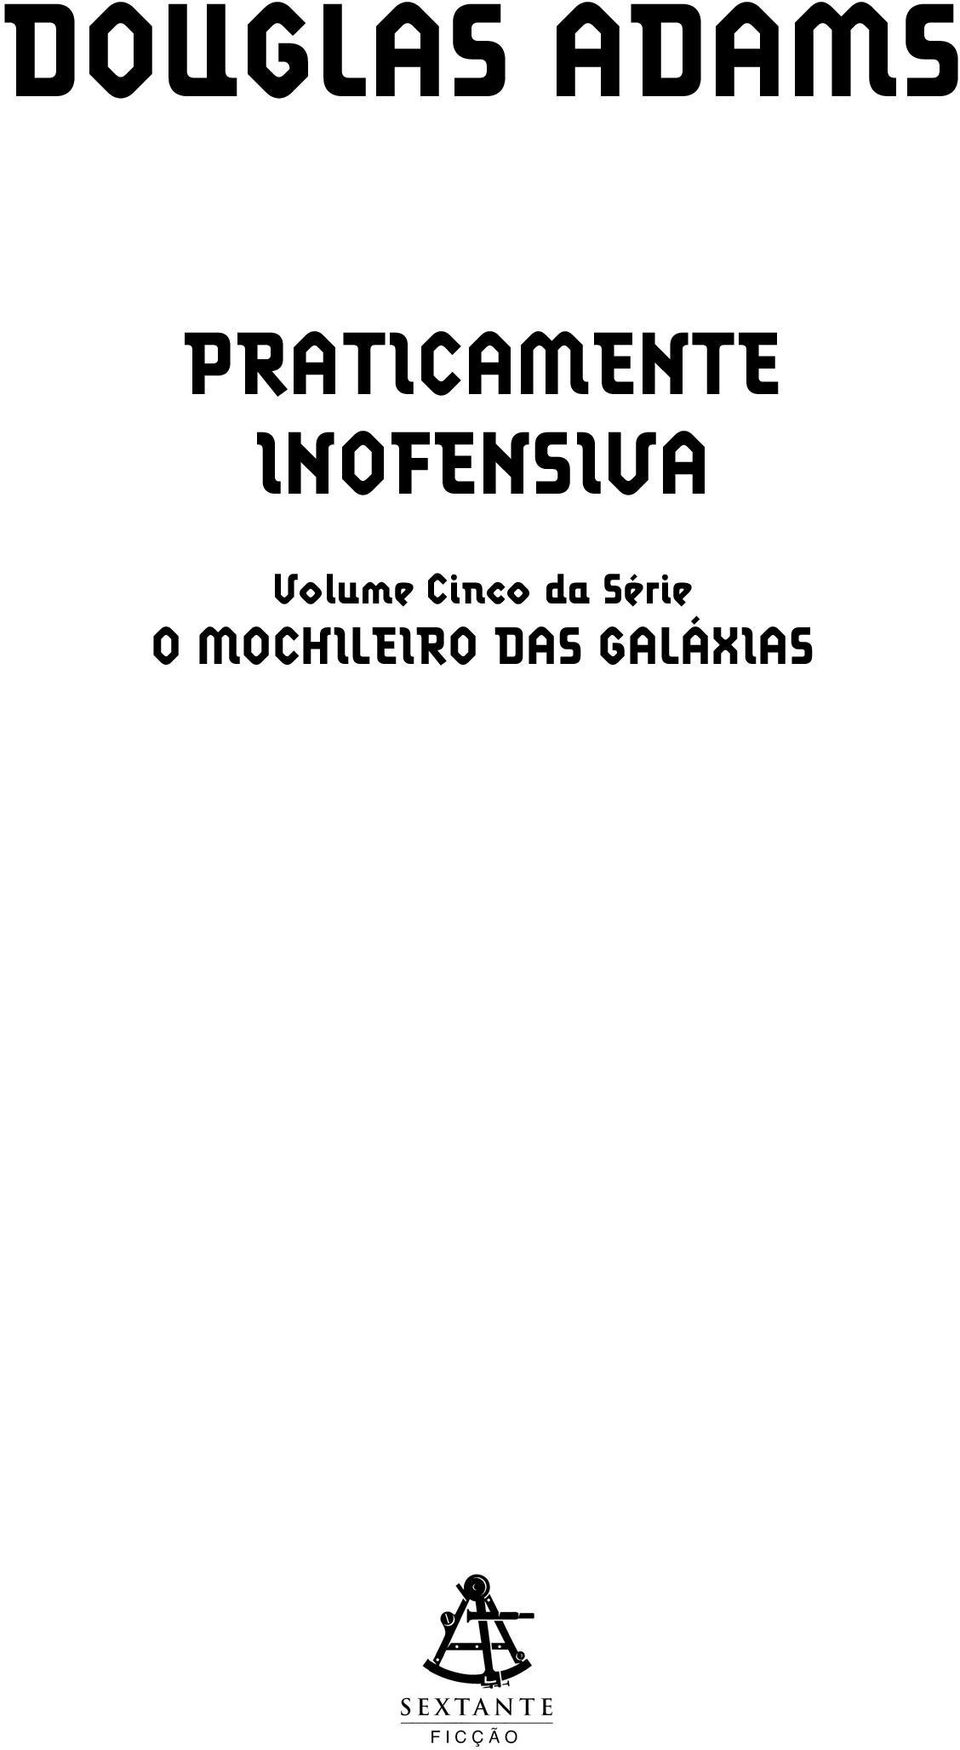 INOFENSIVA Volume